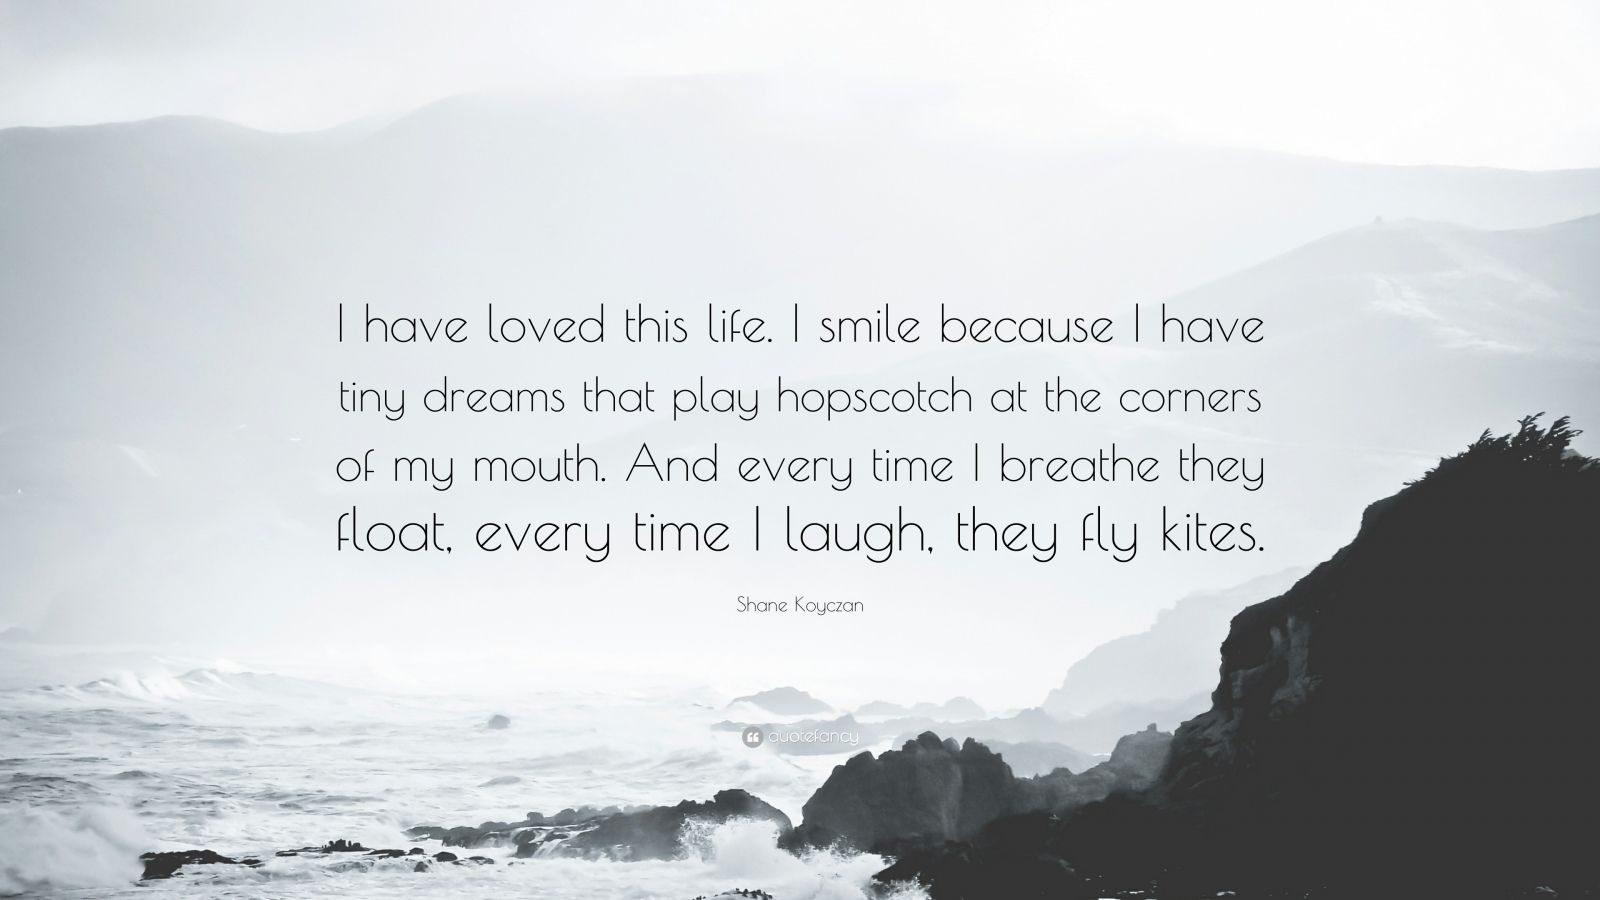 """Shane Koyczan Quote: """"I have loved this life. I smile because I have tiny dreams that play hopscotch at the corners of my mouth. And every time I breathe they float, every time I laugh, they fly kites."""""""